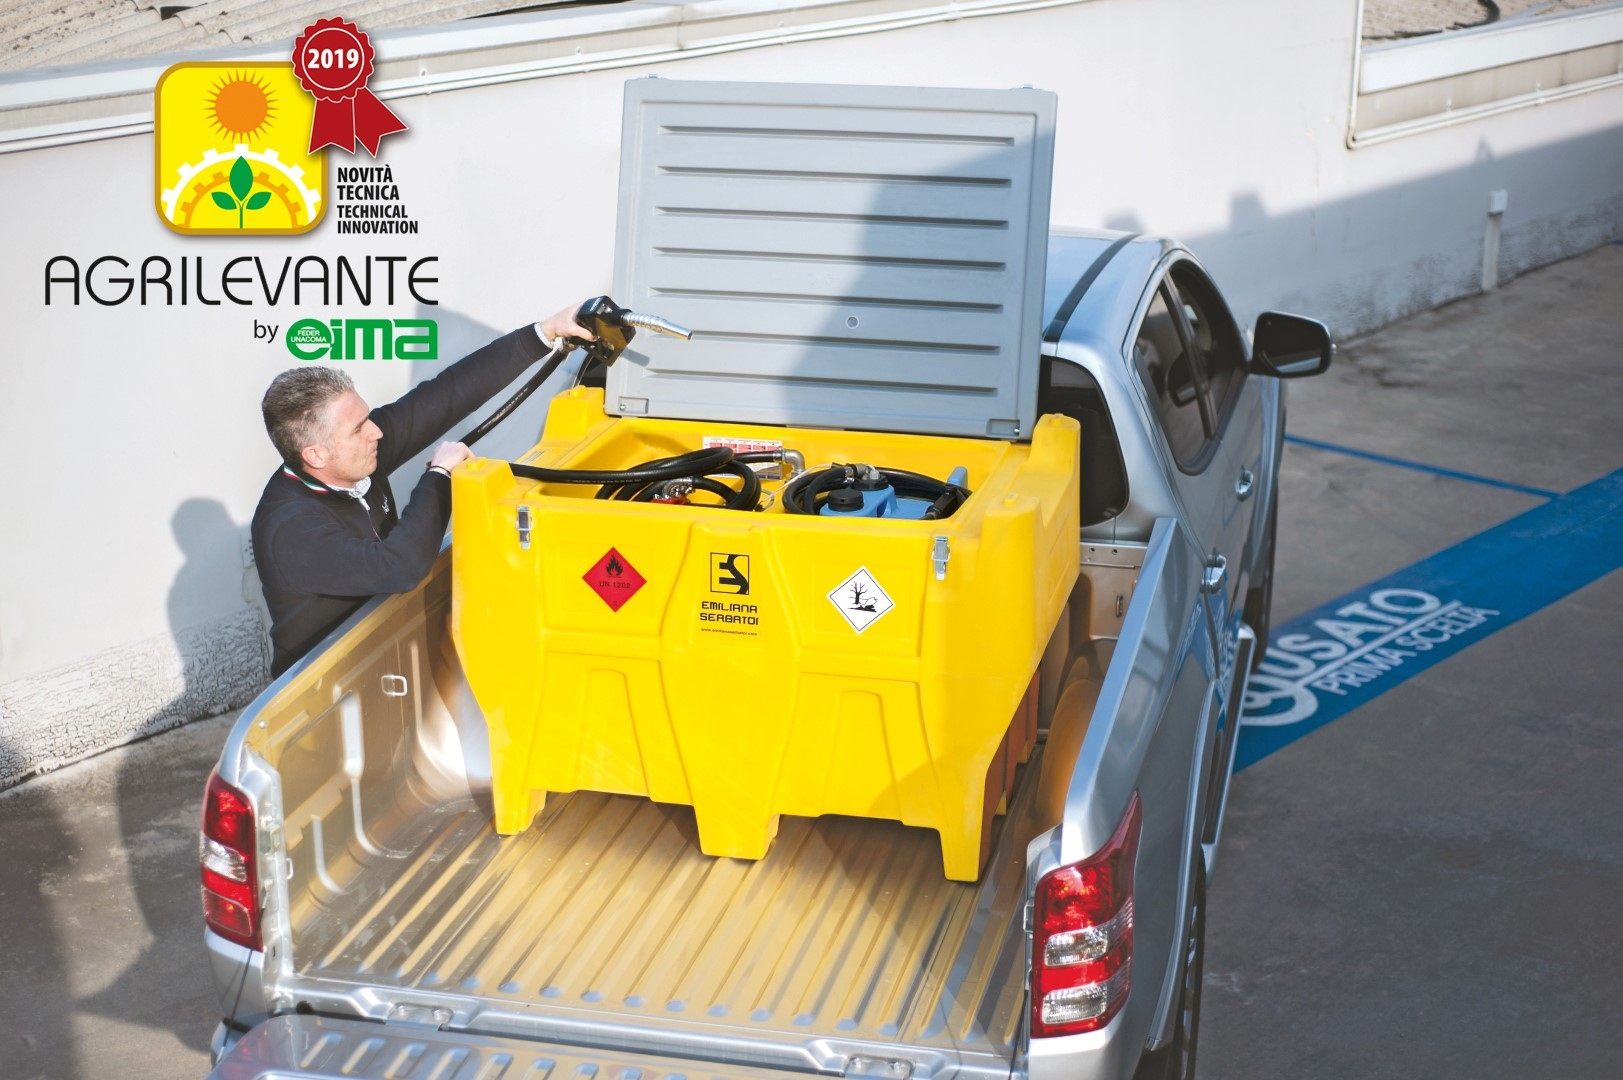 Il Carrytank® Pick-up premiato come Novità tecnica ad Agrilevante